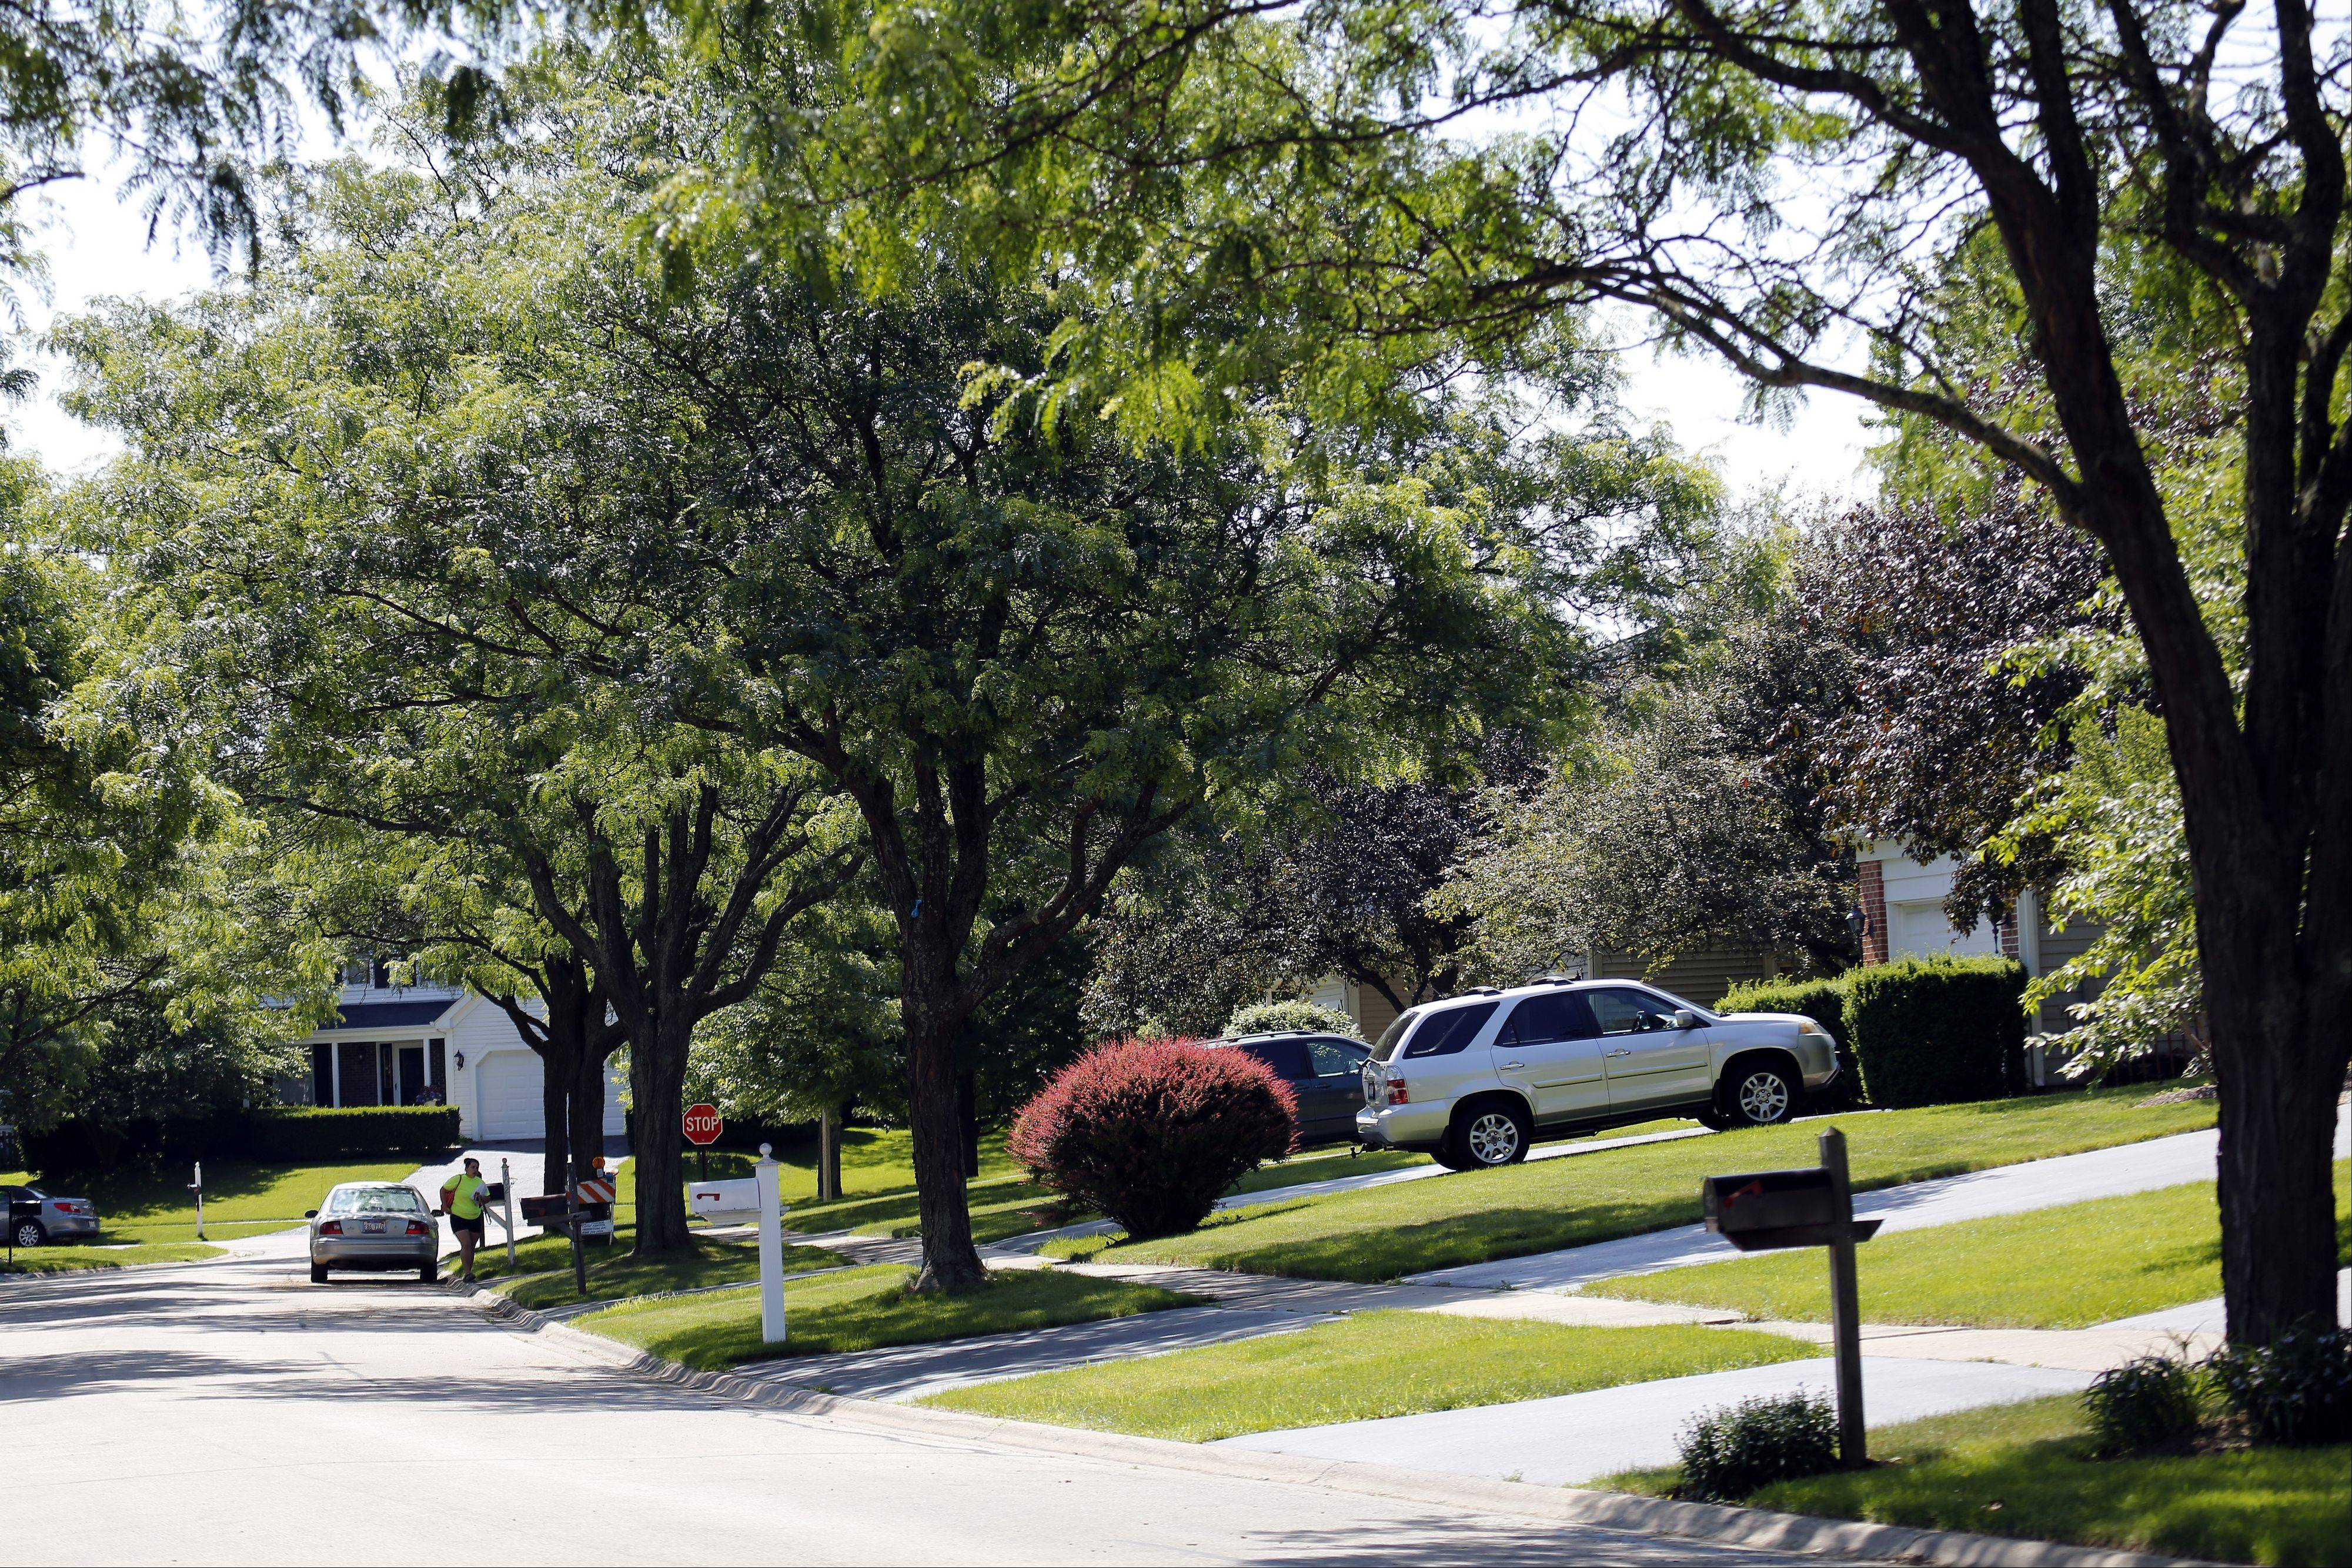 This view along Thackeray Lane shows the tree-lined streets found in Fox River Grove�s Foxmoor neighborhood.